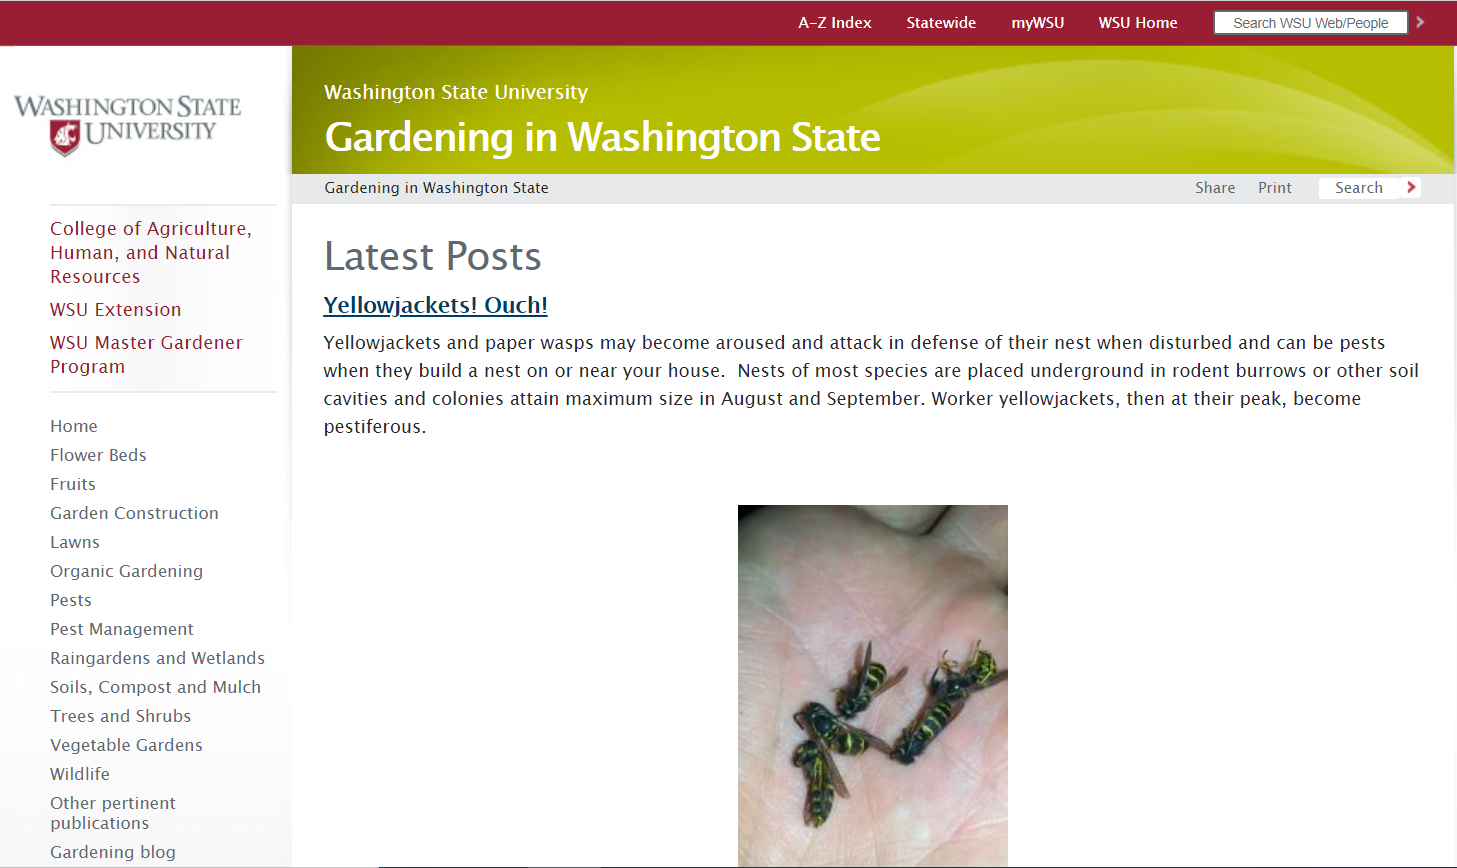 WSU - Gardening in Washington state home page